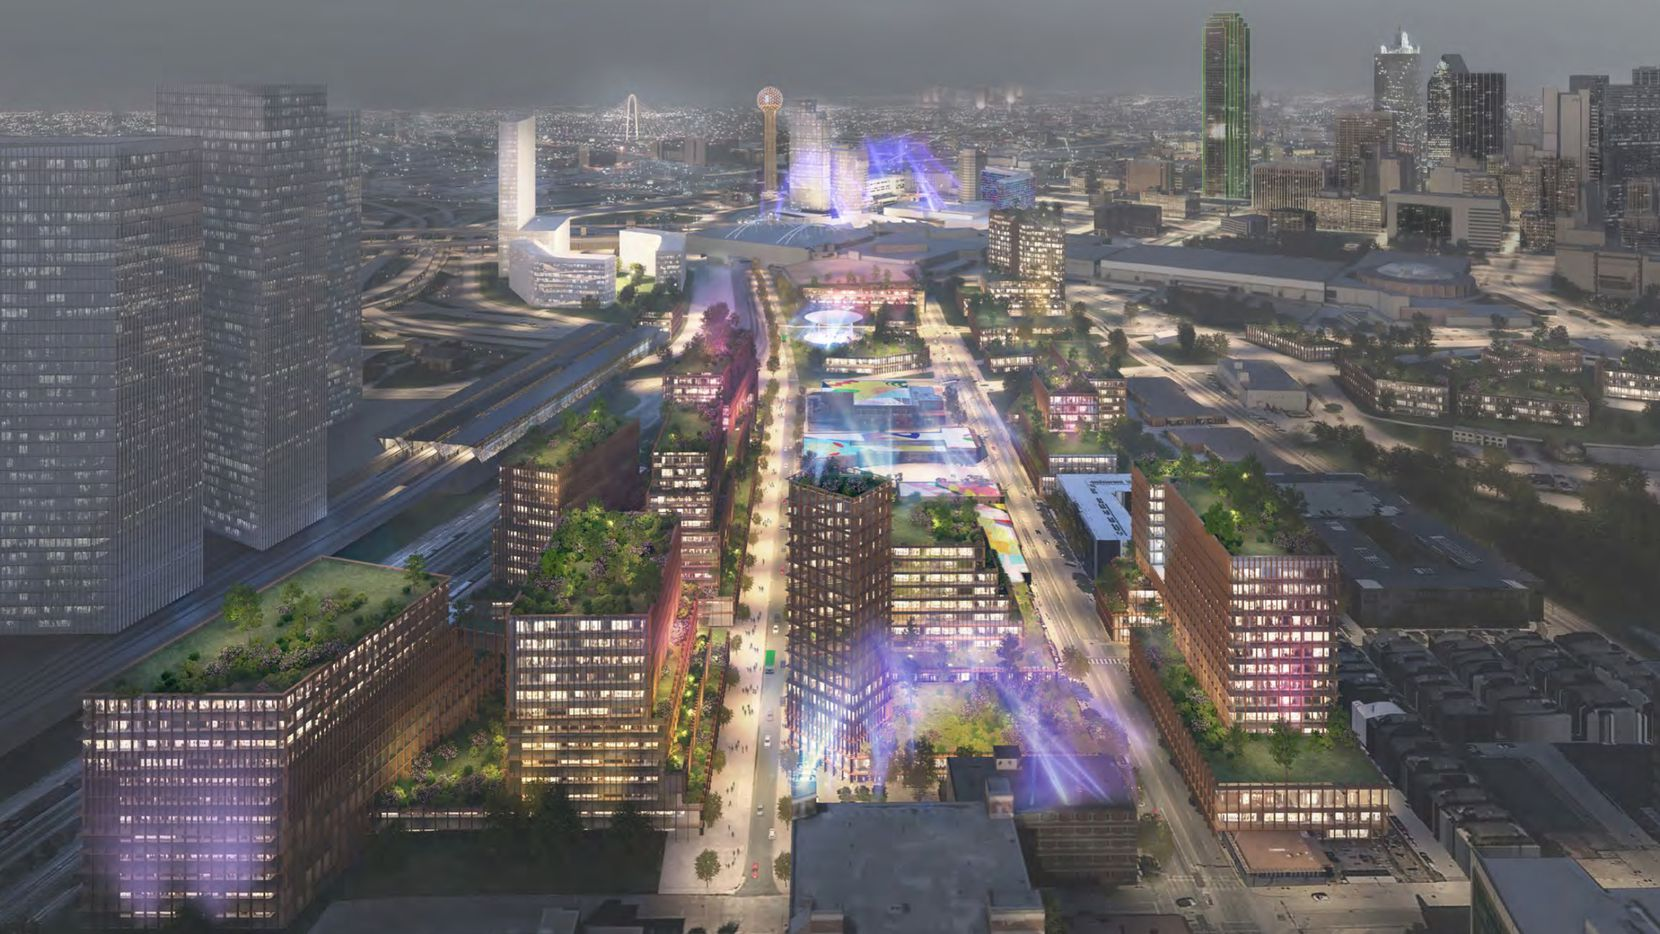 The high-speed rail terminal would be the centerpiece of a new high-rise mixed-use district developer Matthews Southwest has proposed for the area south of downtown Dallas.